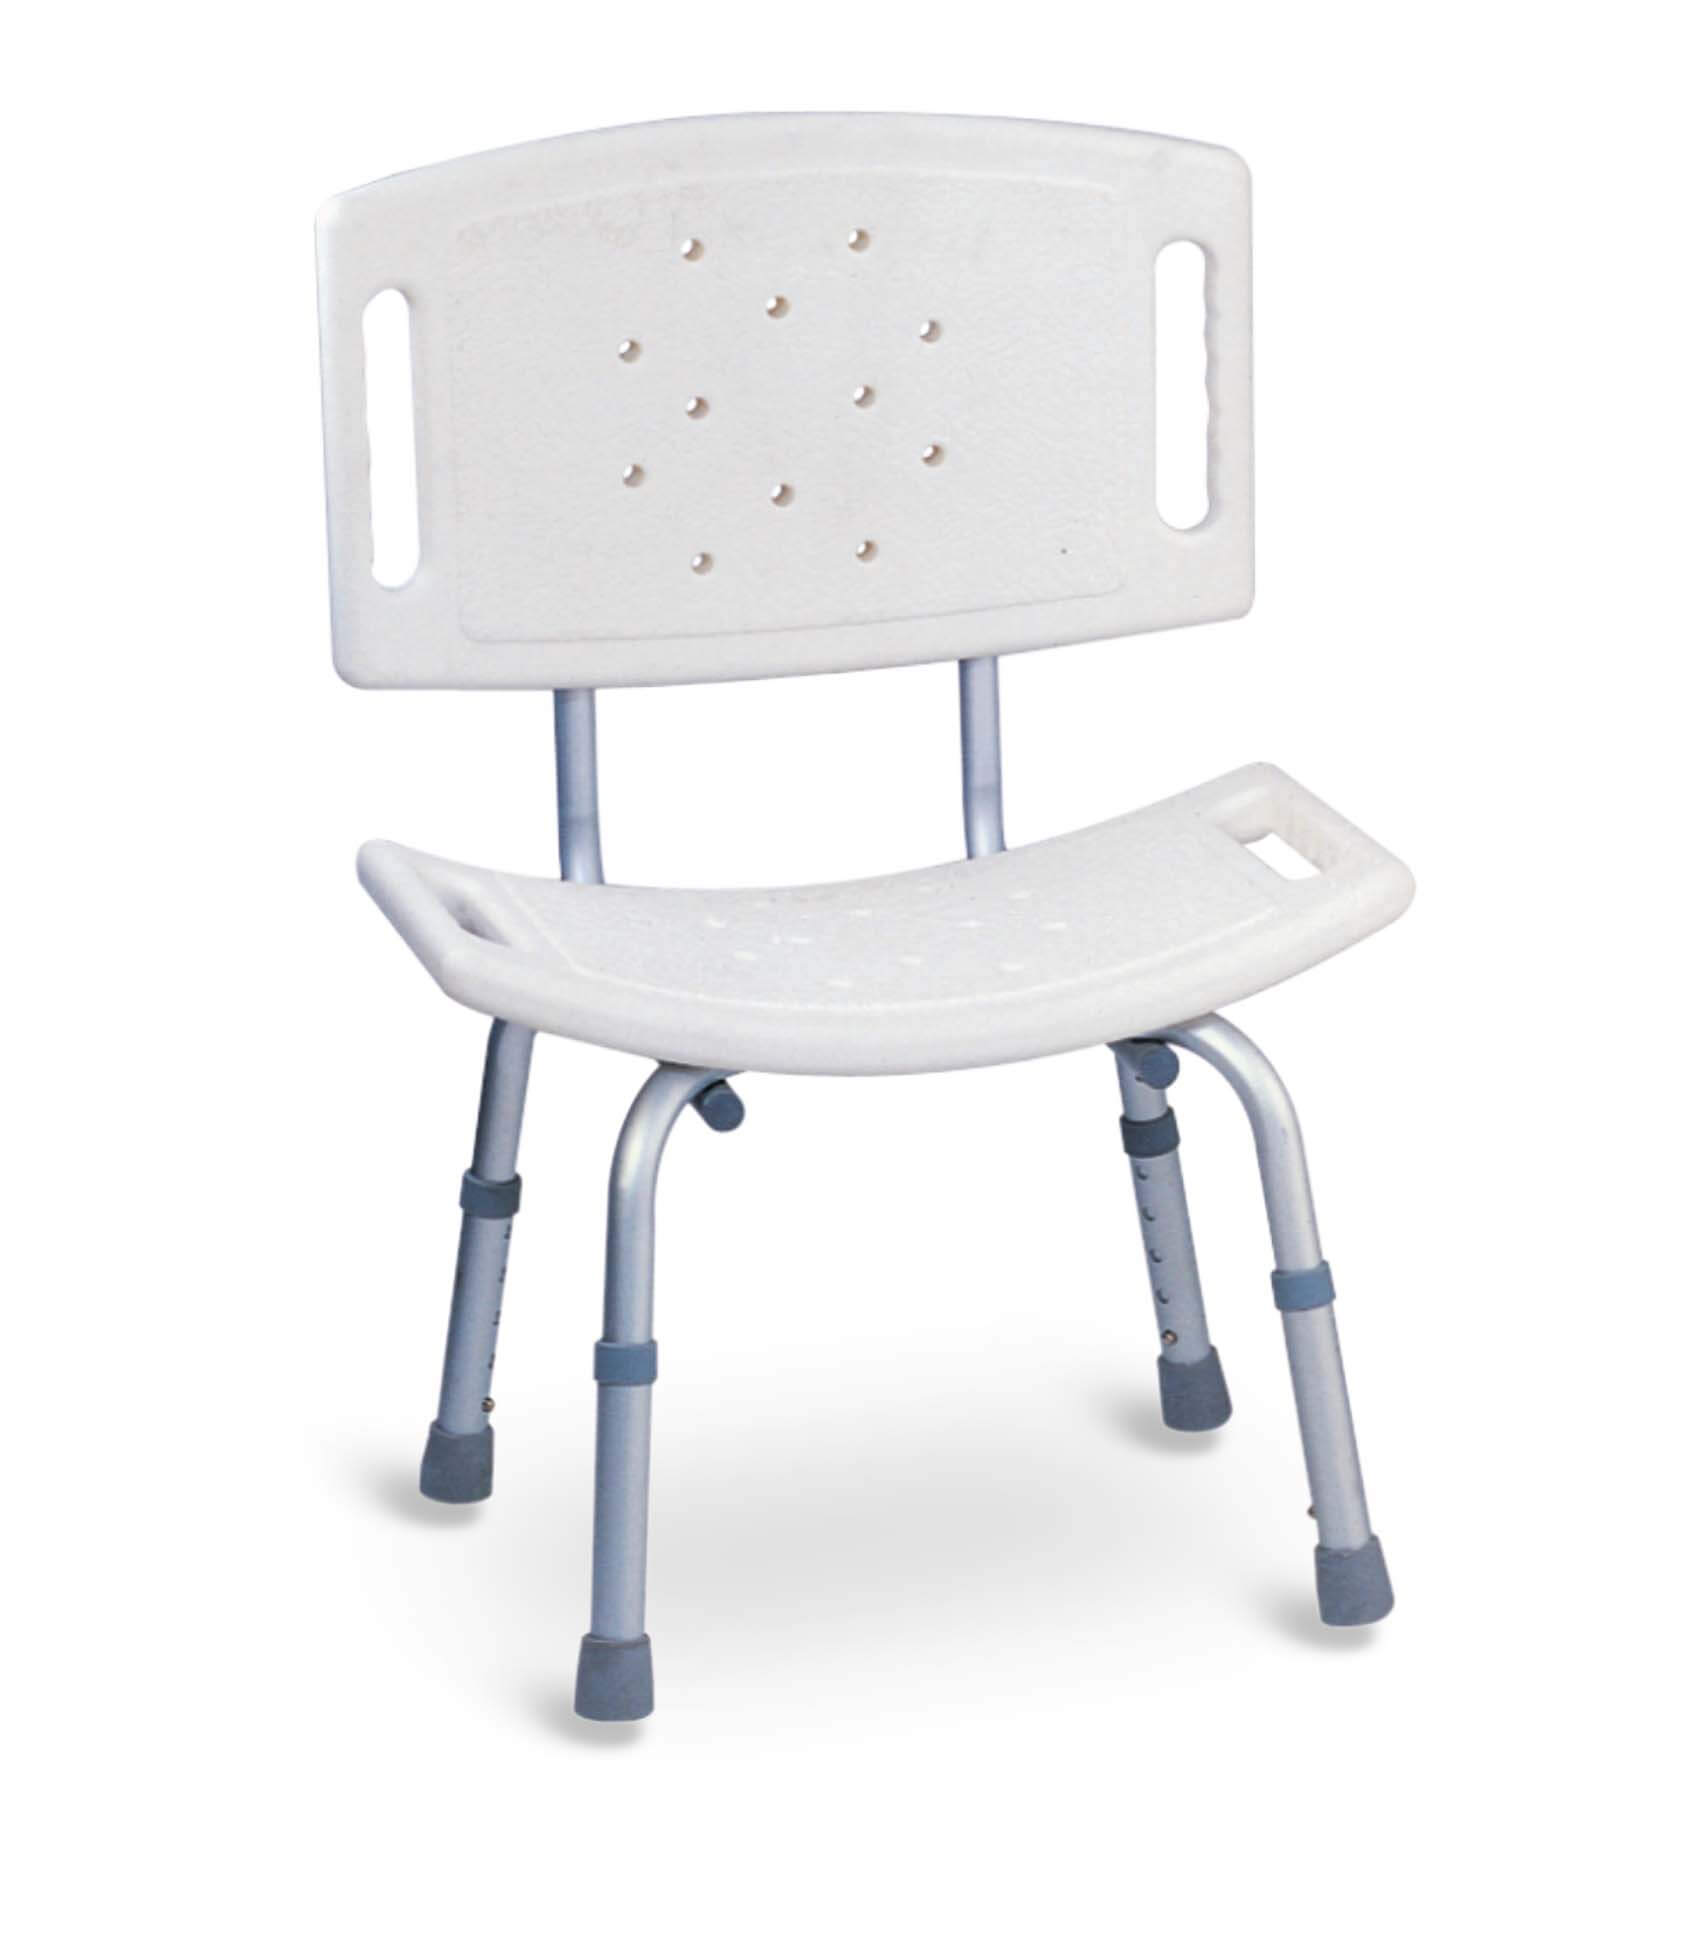 probasics wheels weight back of with lb and page shower sold seats products cs bsbcwb capacity bath bariatric chair